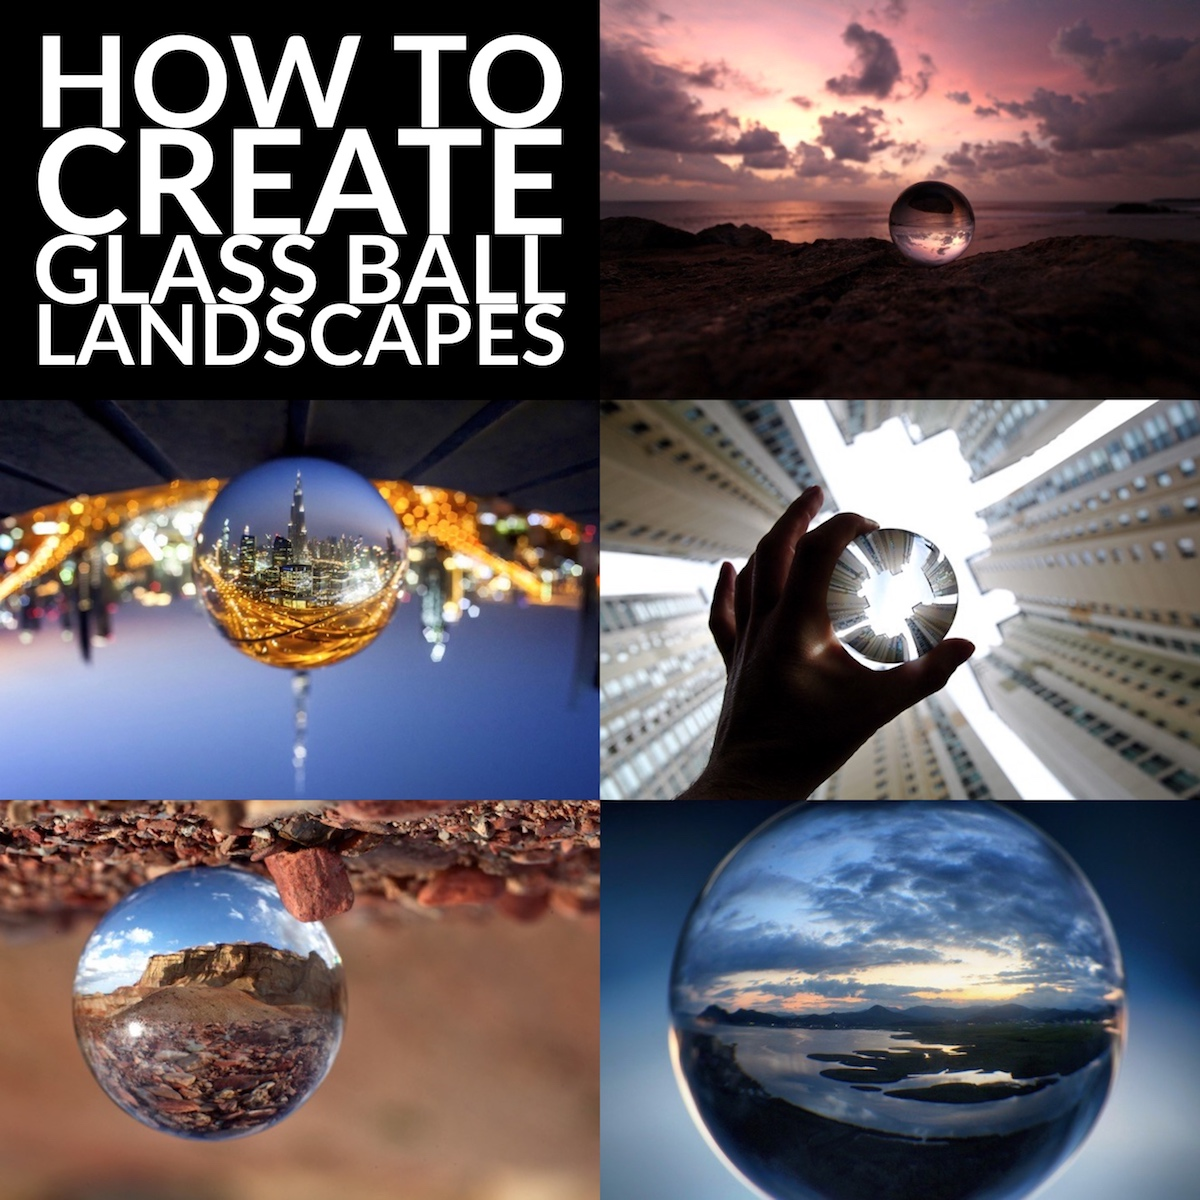 Quick-Start Guide for Crystal Ball